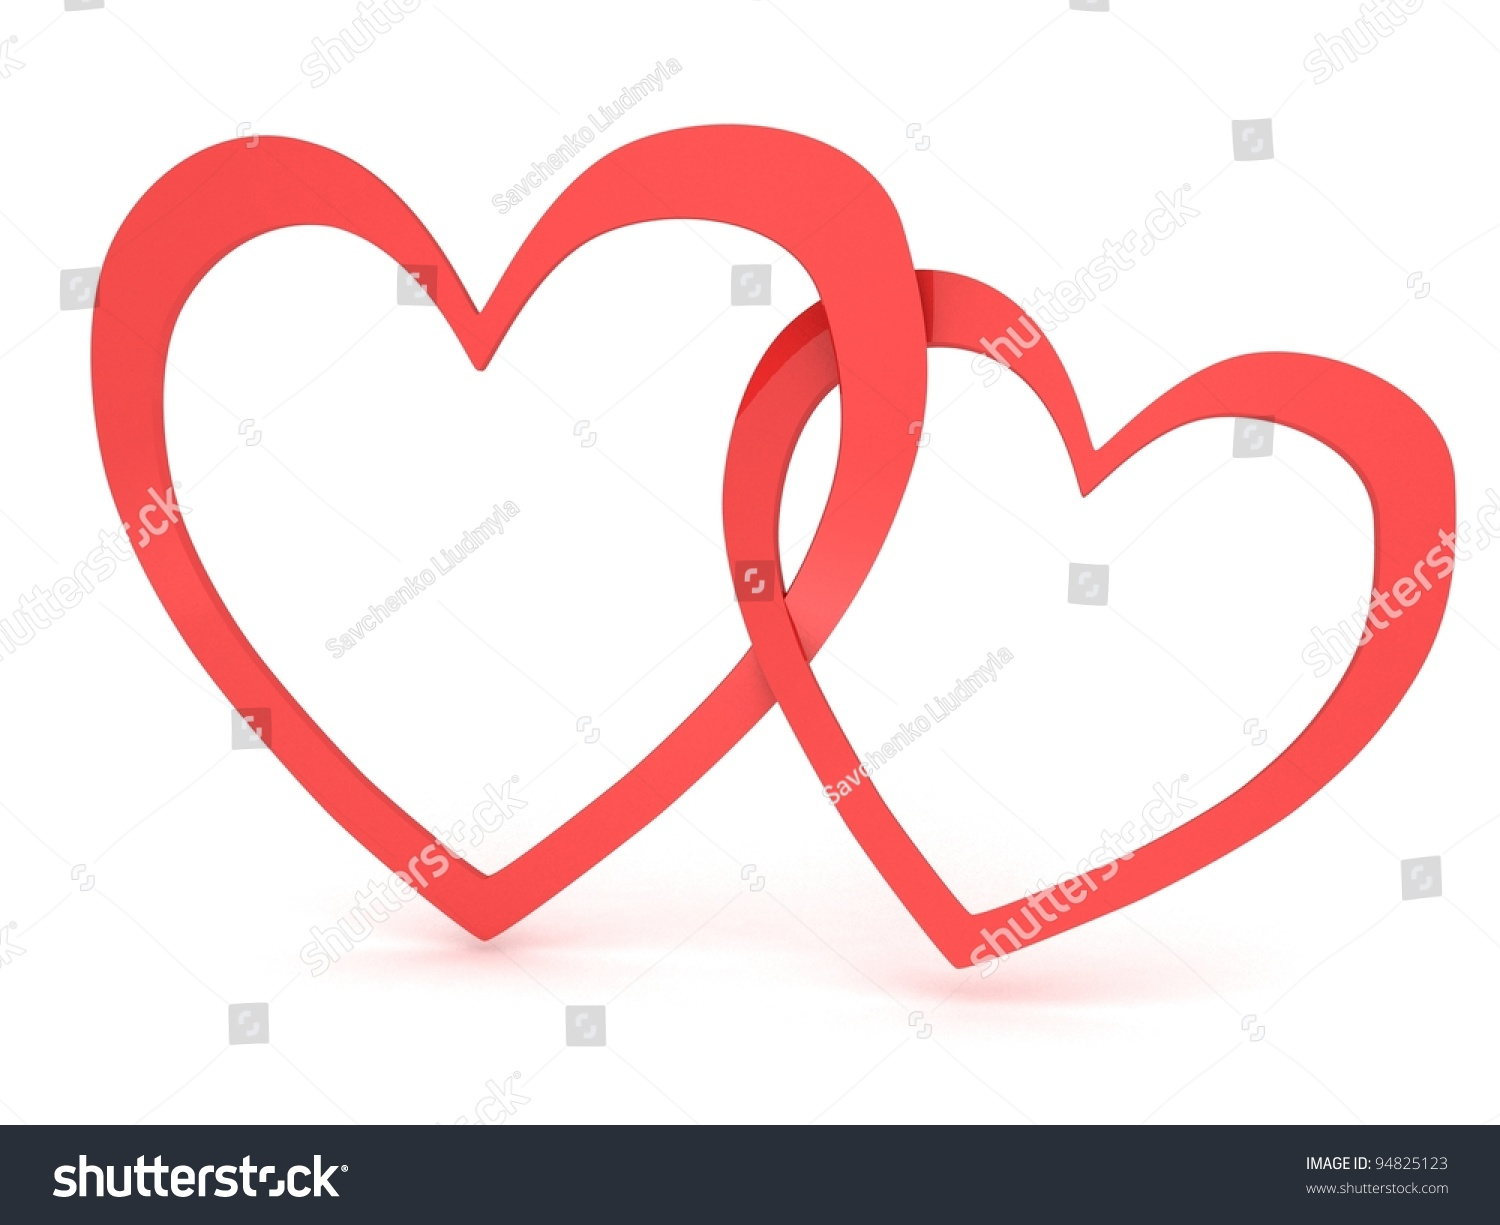 Two Hearts Together Stock Photo 94825123 : Shutterstock